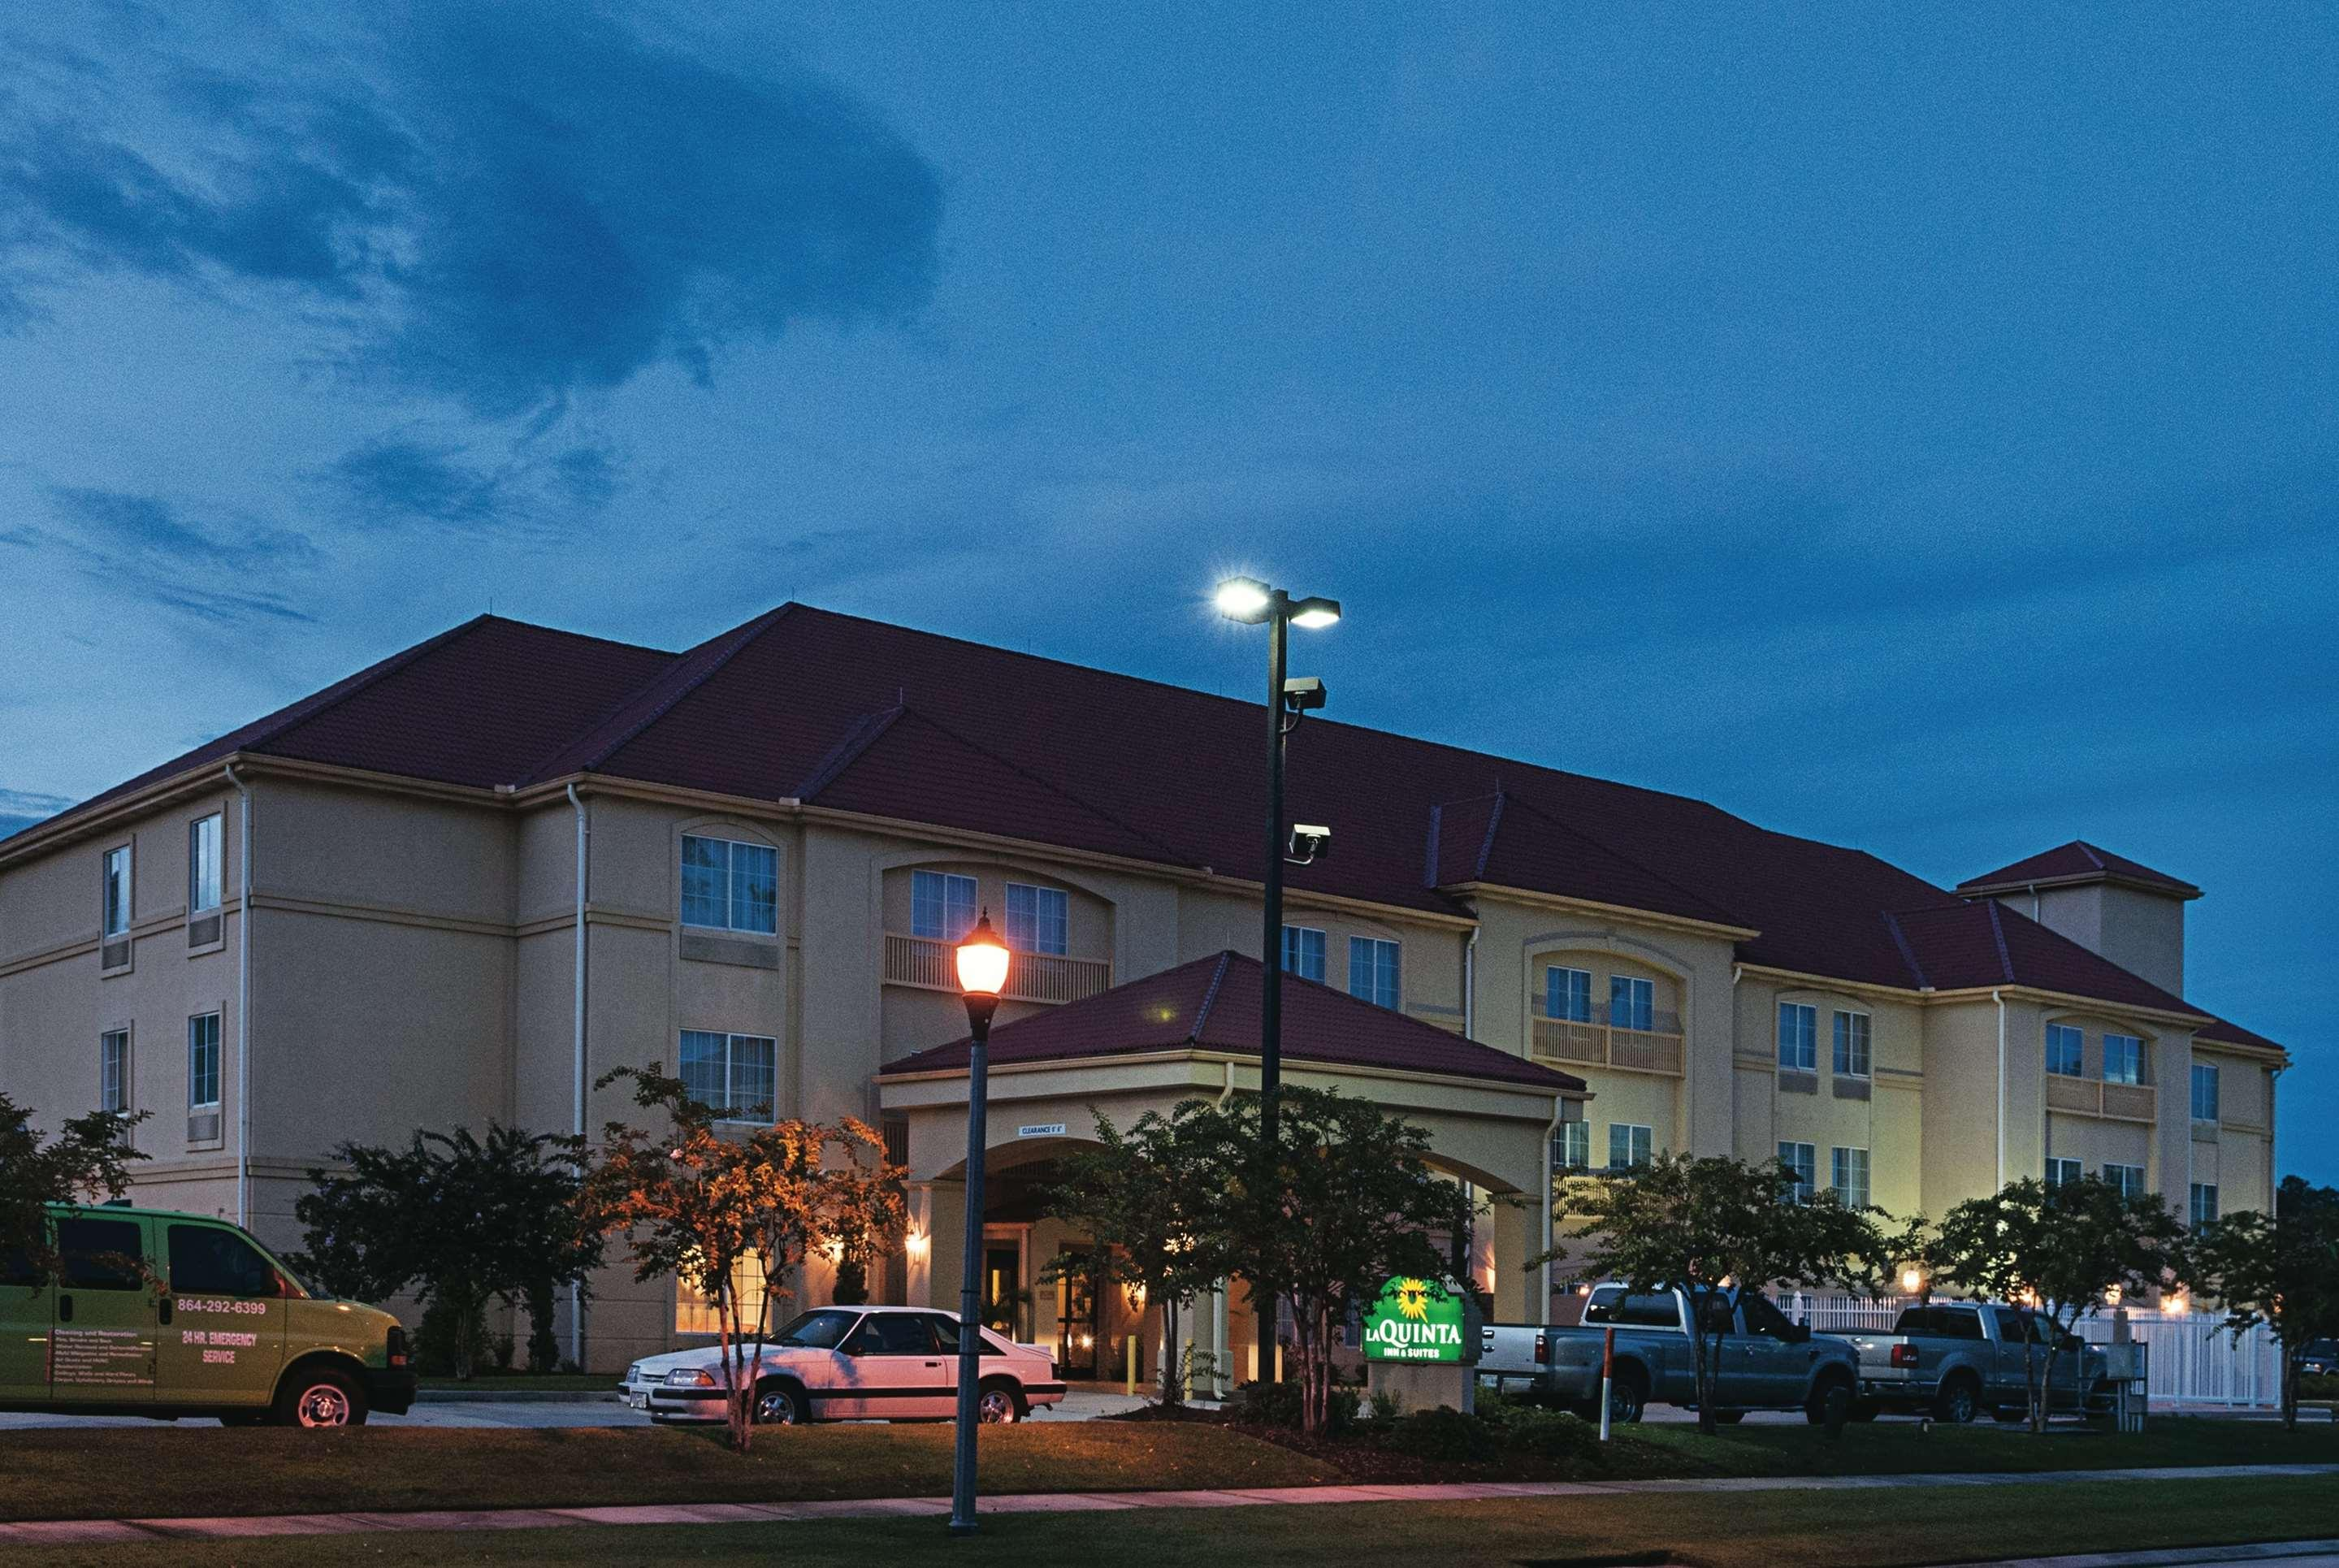 La Quinta Inn & Suites by Wyndham Slidell - North Shore Area